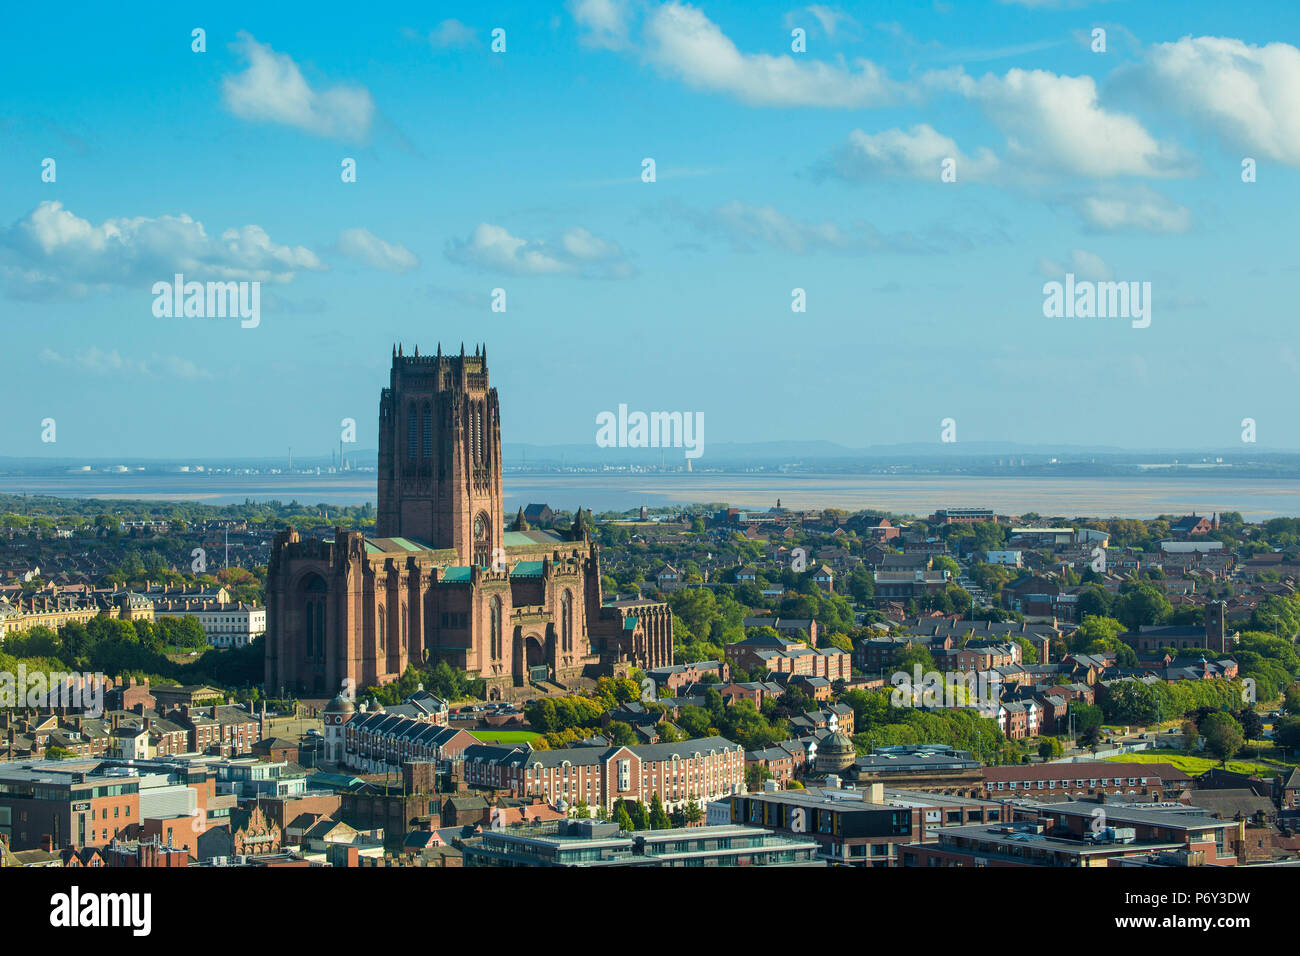 England, Merseyside, Liverpool, View of Liverpool Cathedral built on St James Mount - Stock Image